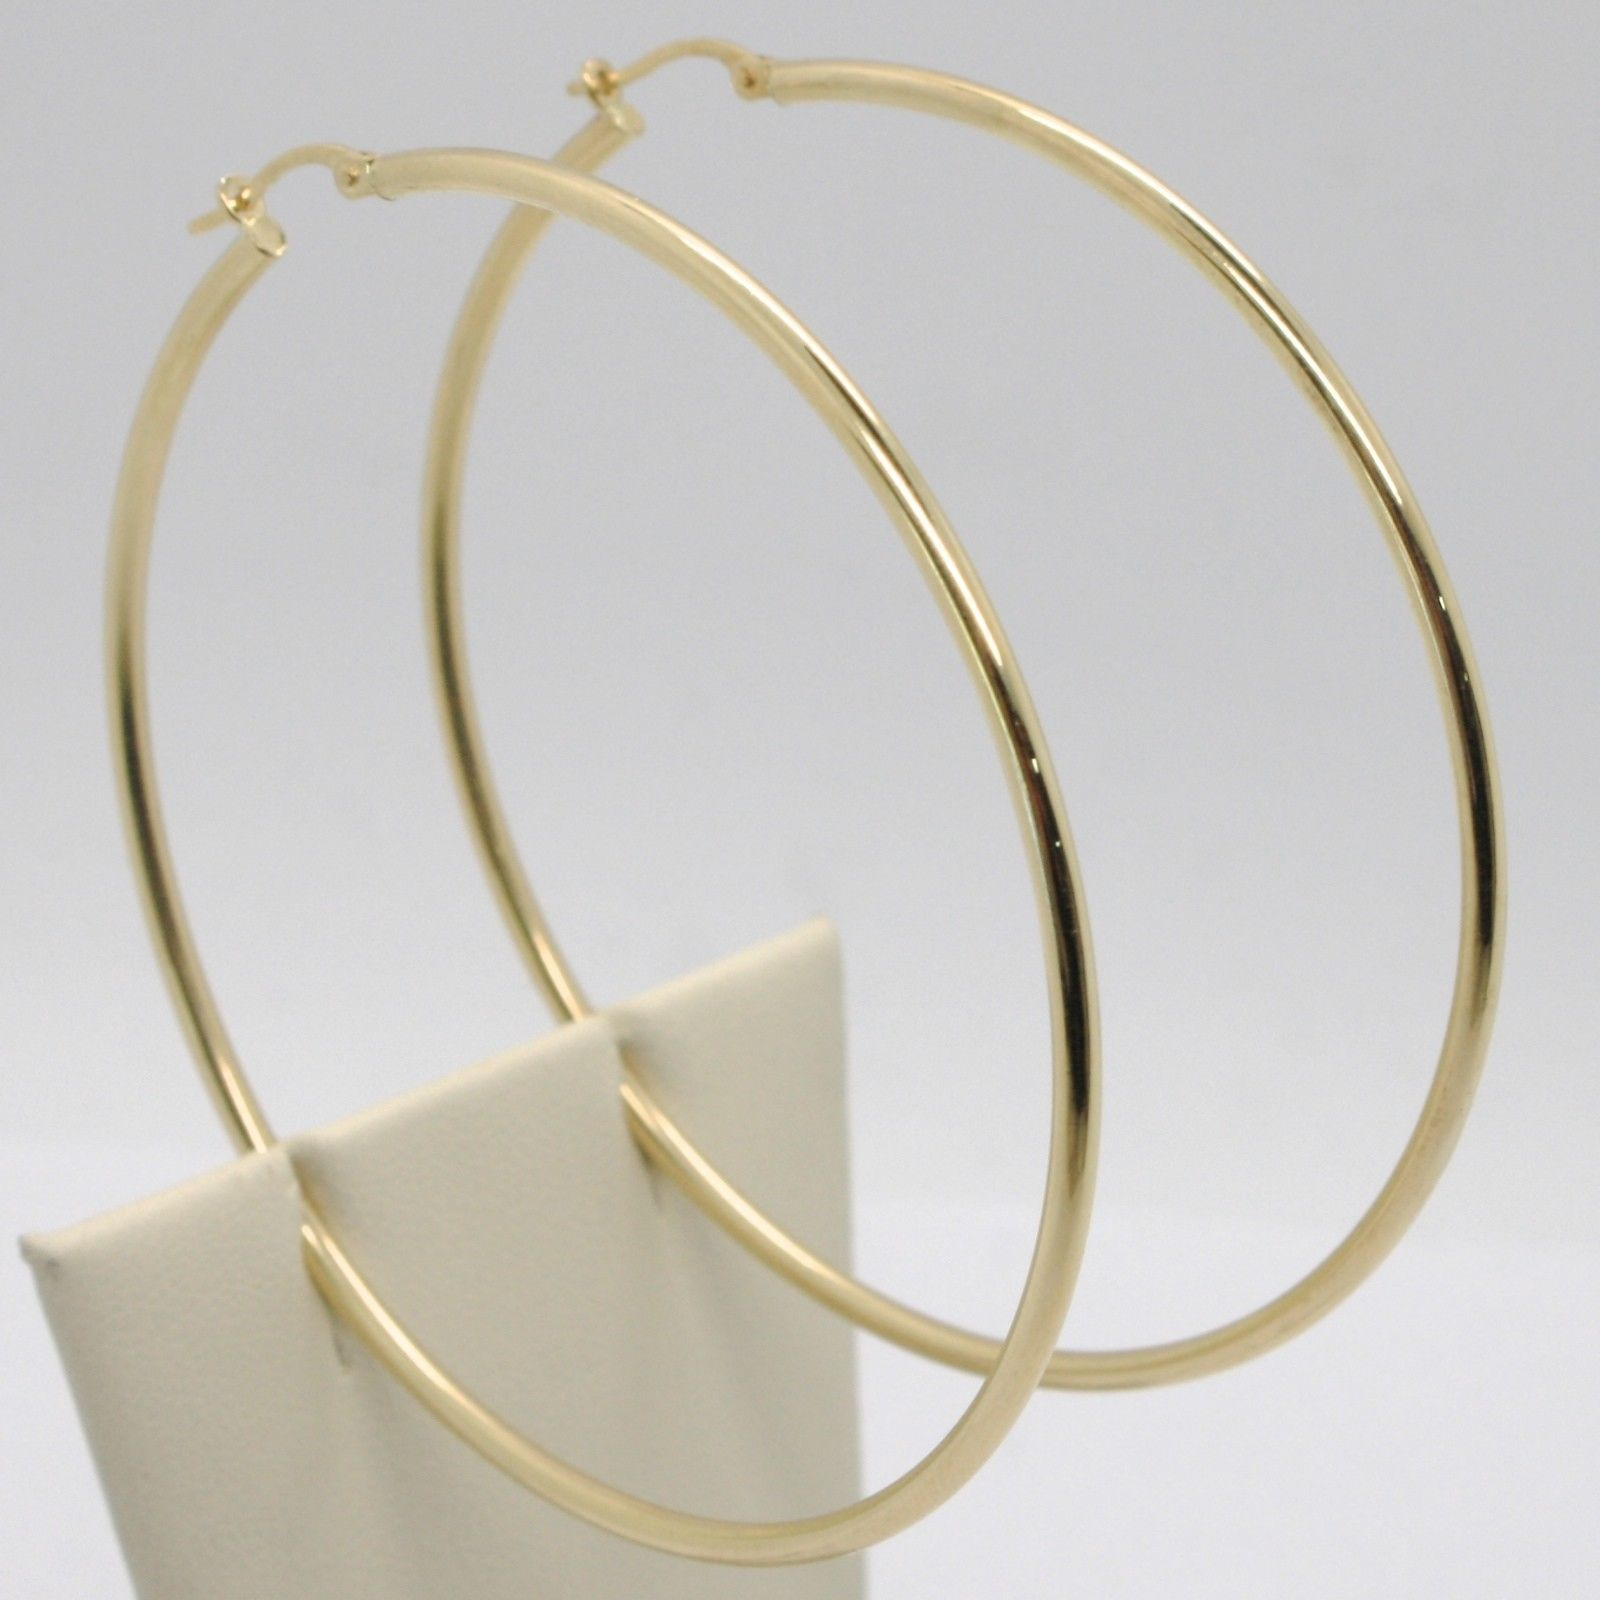 18K YELLOW GOLD ROUND CIRCLE EARRINGS DIAMETER 67 MM, WIDTH 2 MM, MADE IN ITALY